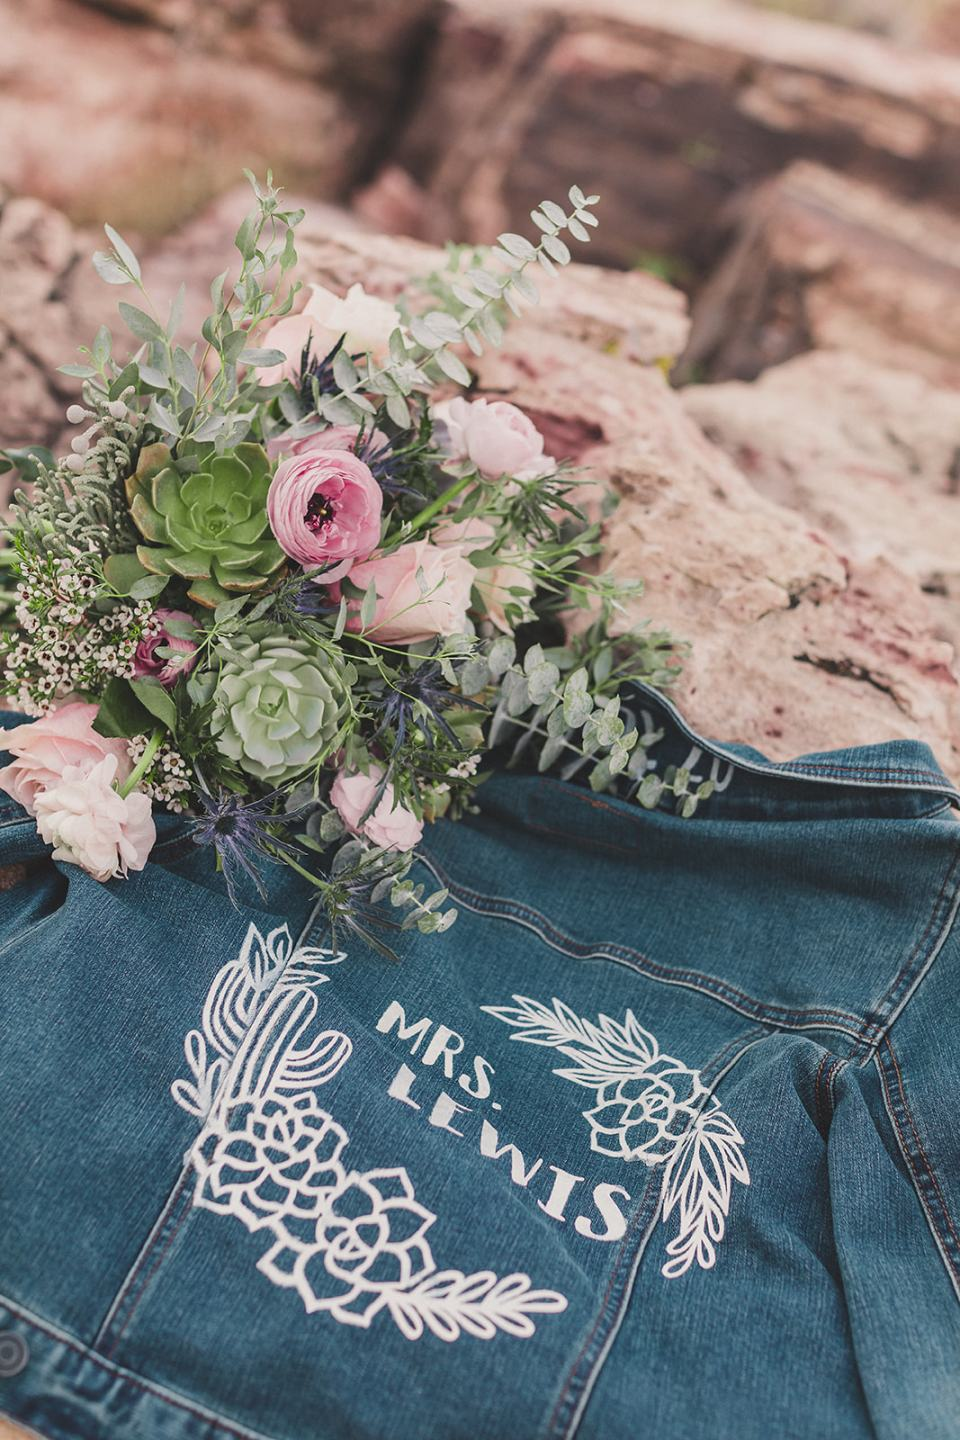 custom jean jacket and bride's bouquet for Red Spring Boardwalk elopement